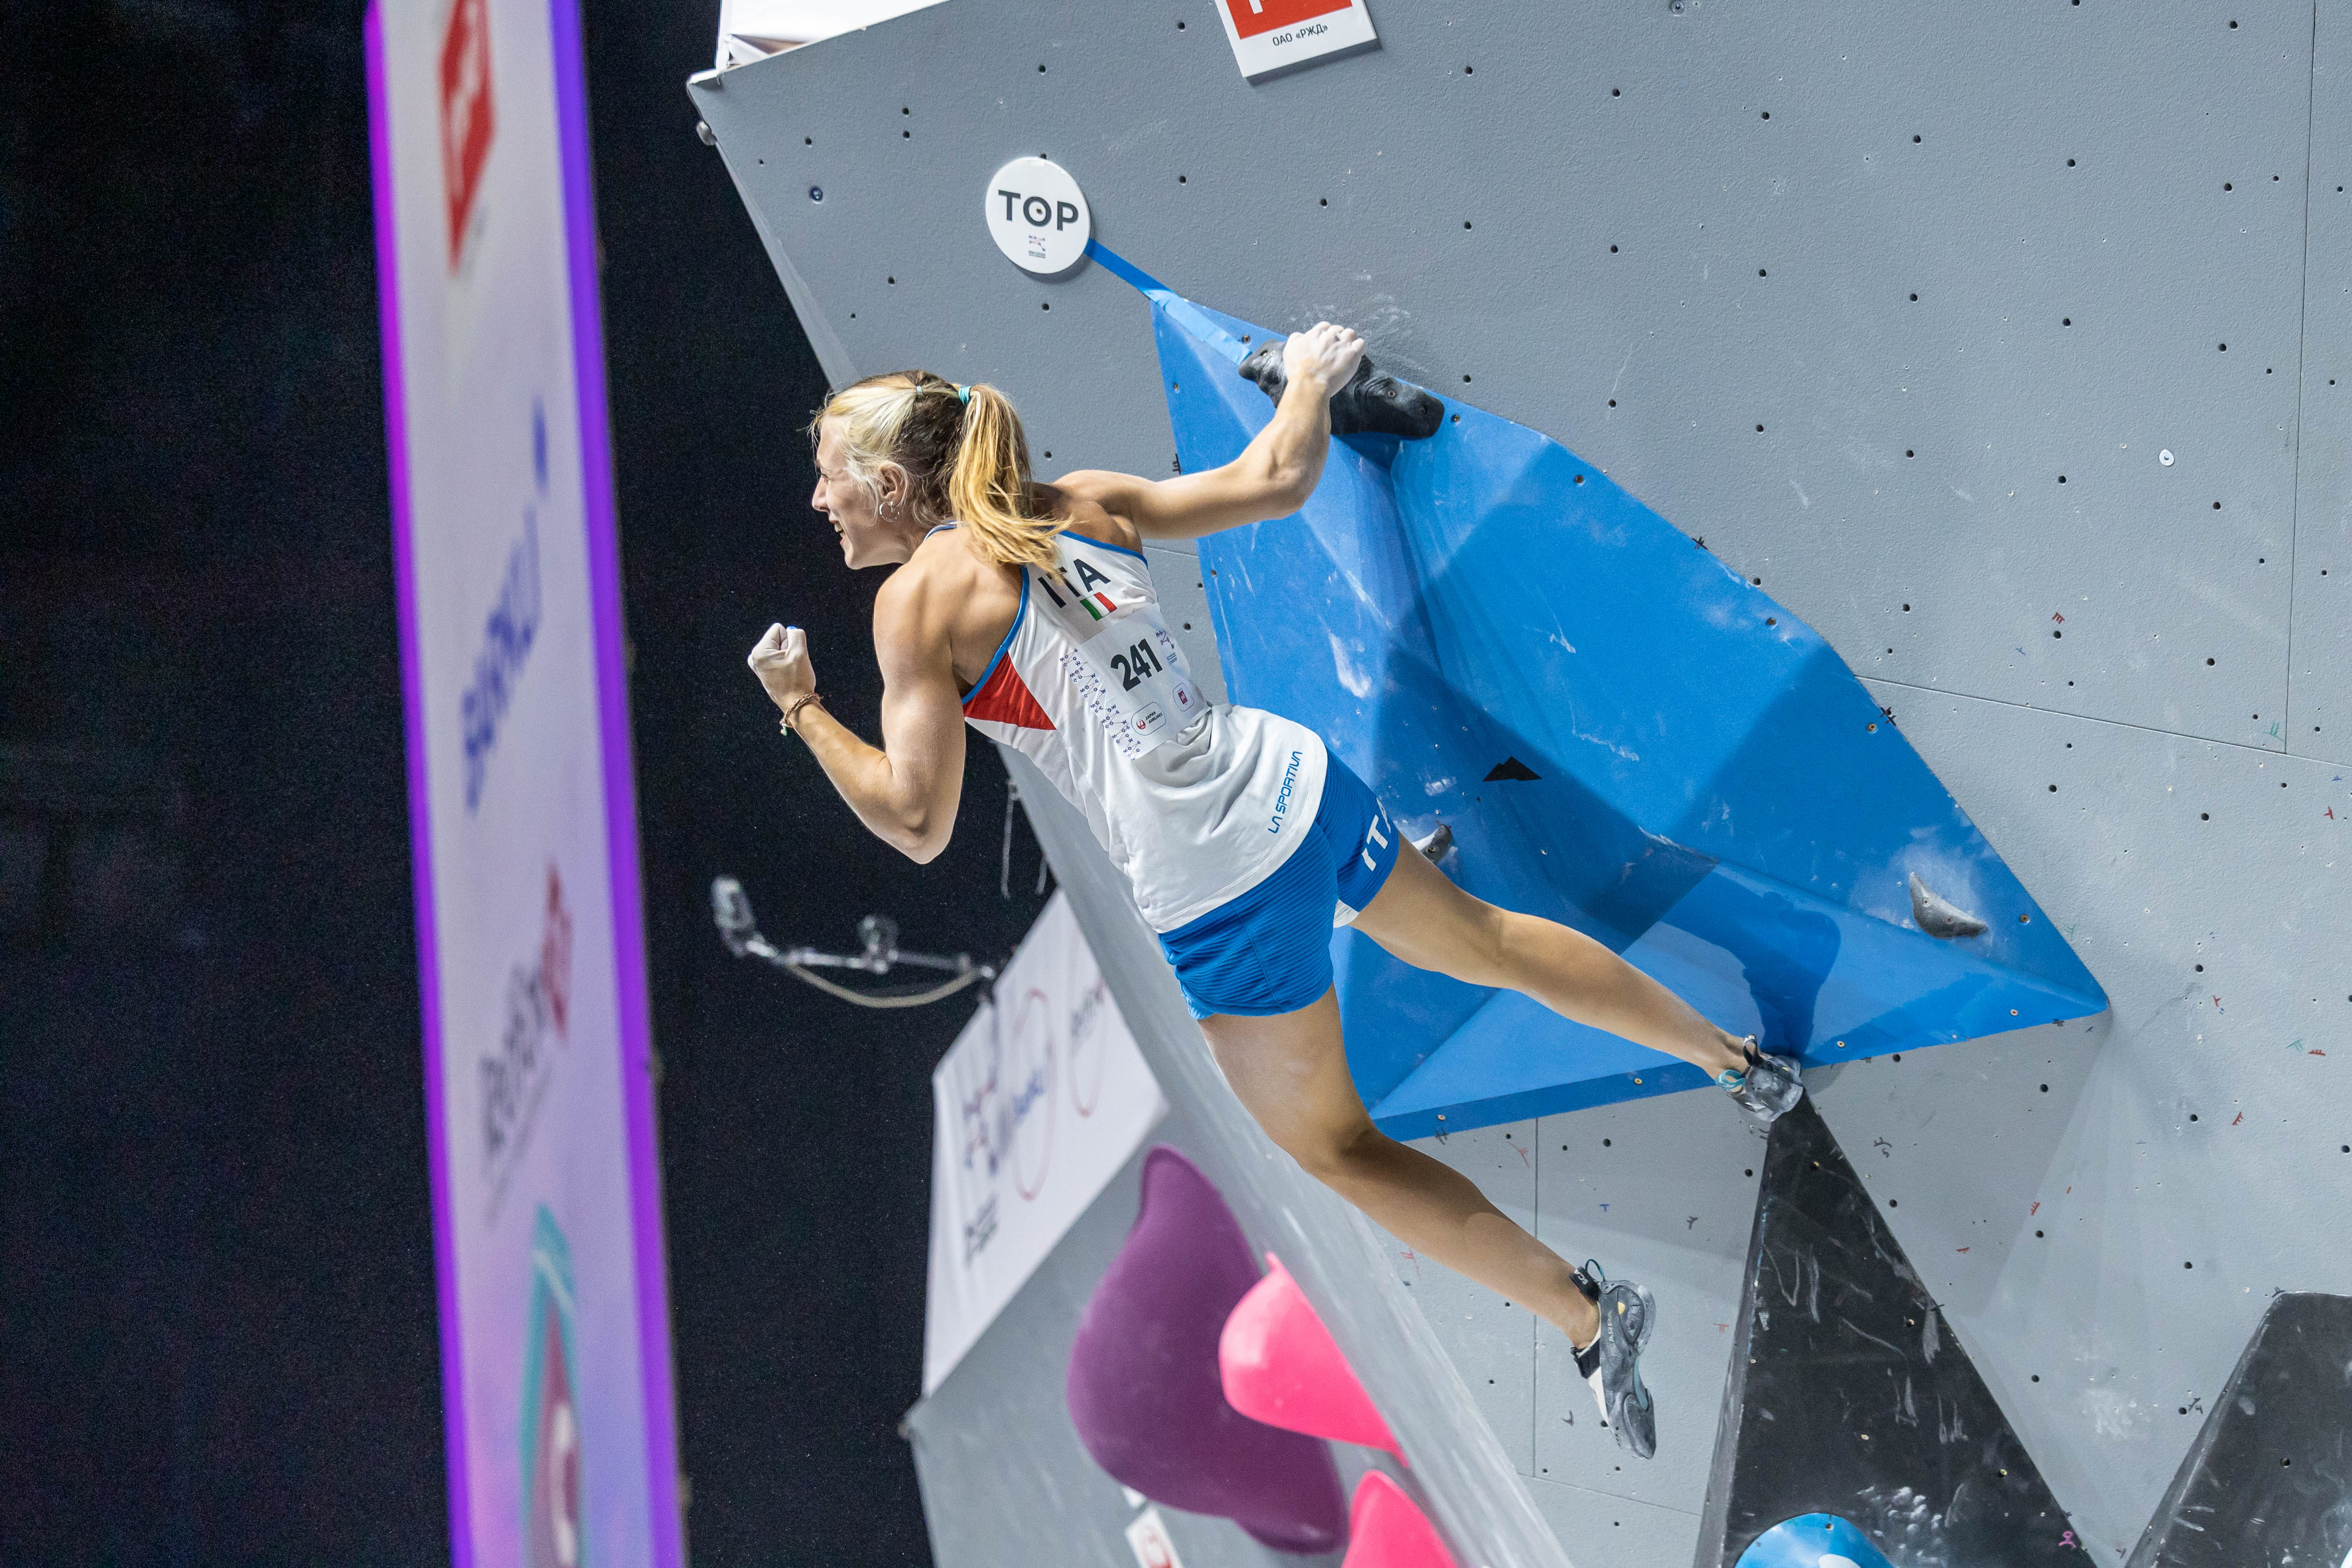 210918 IFSC News Natalia Grossman Camilla Moroni lead the pack of six climbers that will battle for the Boulder world title